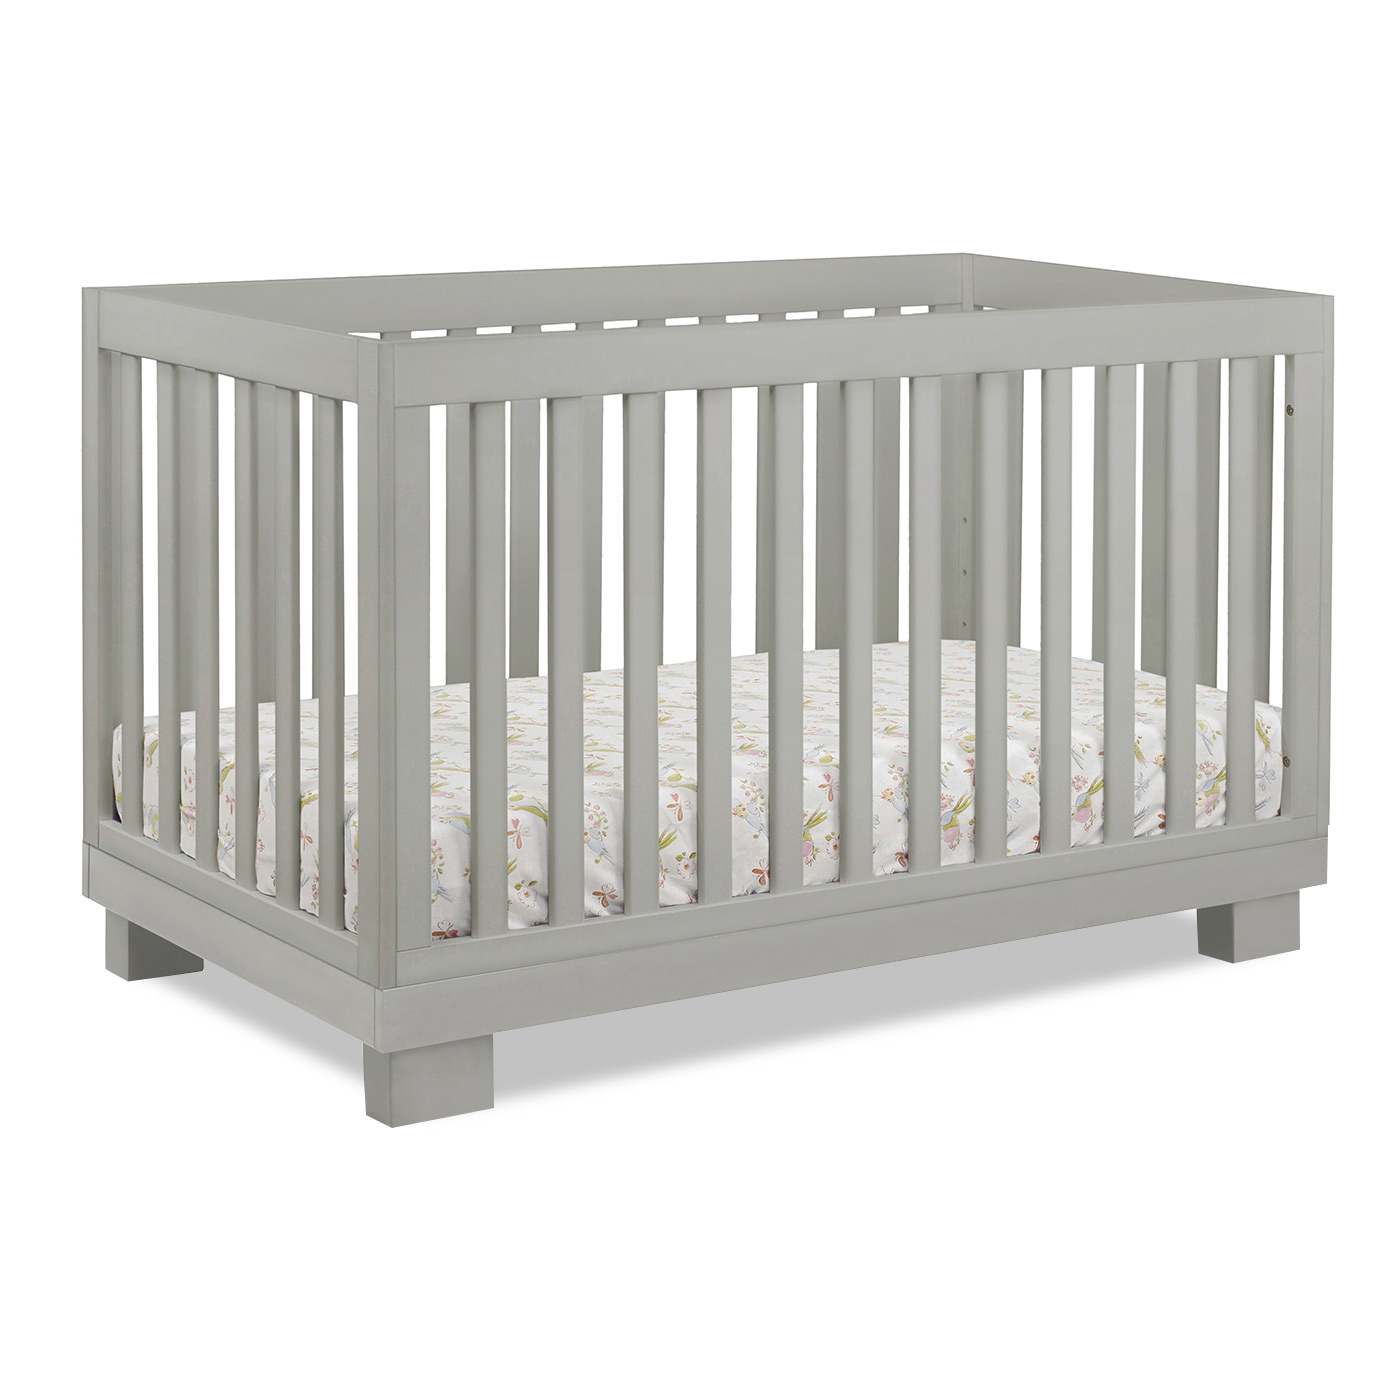 interesting cribs modern hudson crib nursery for bedroom cozy convertible reviews on wood white modo and in mcgrecords design tile recall babyletto com flooring nightstand